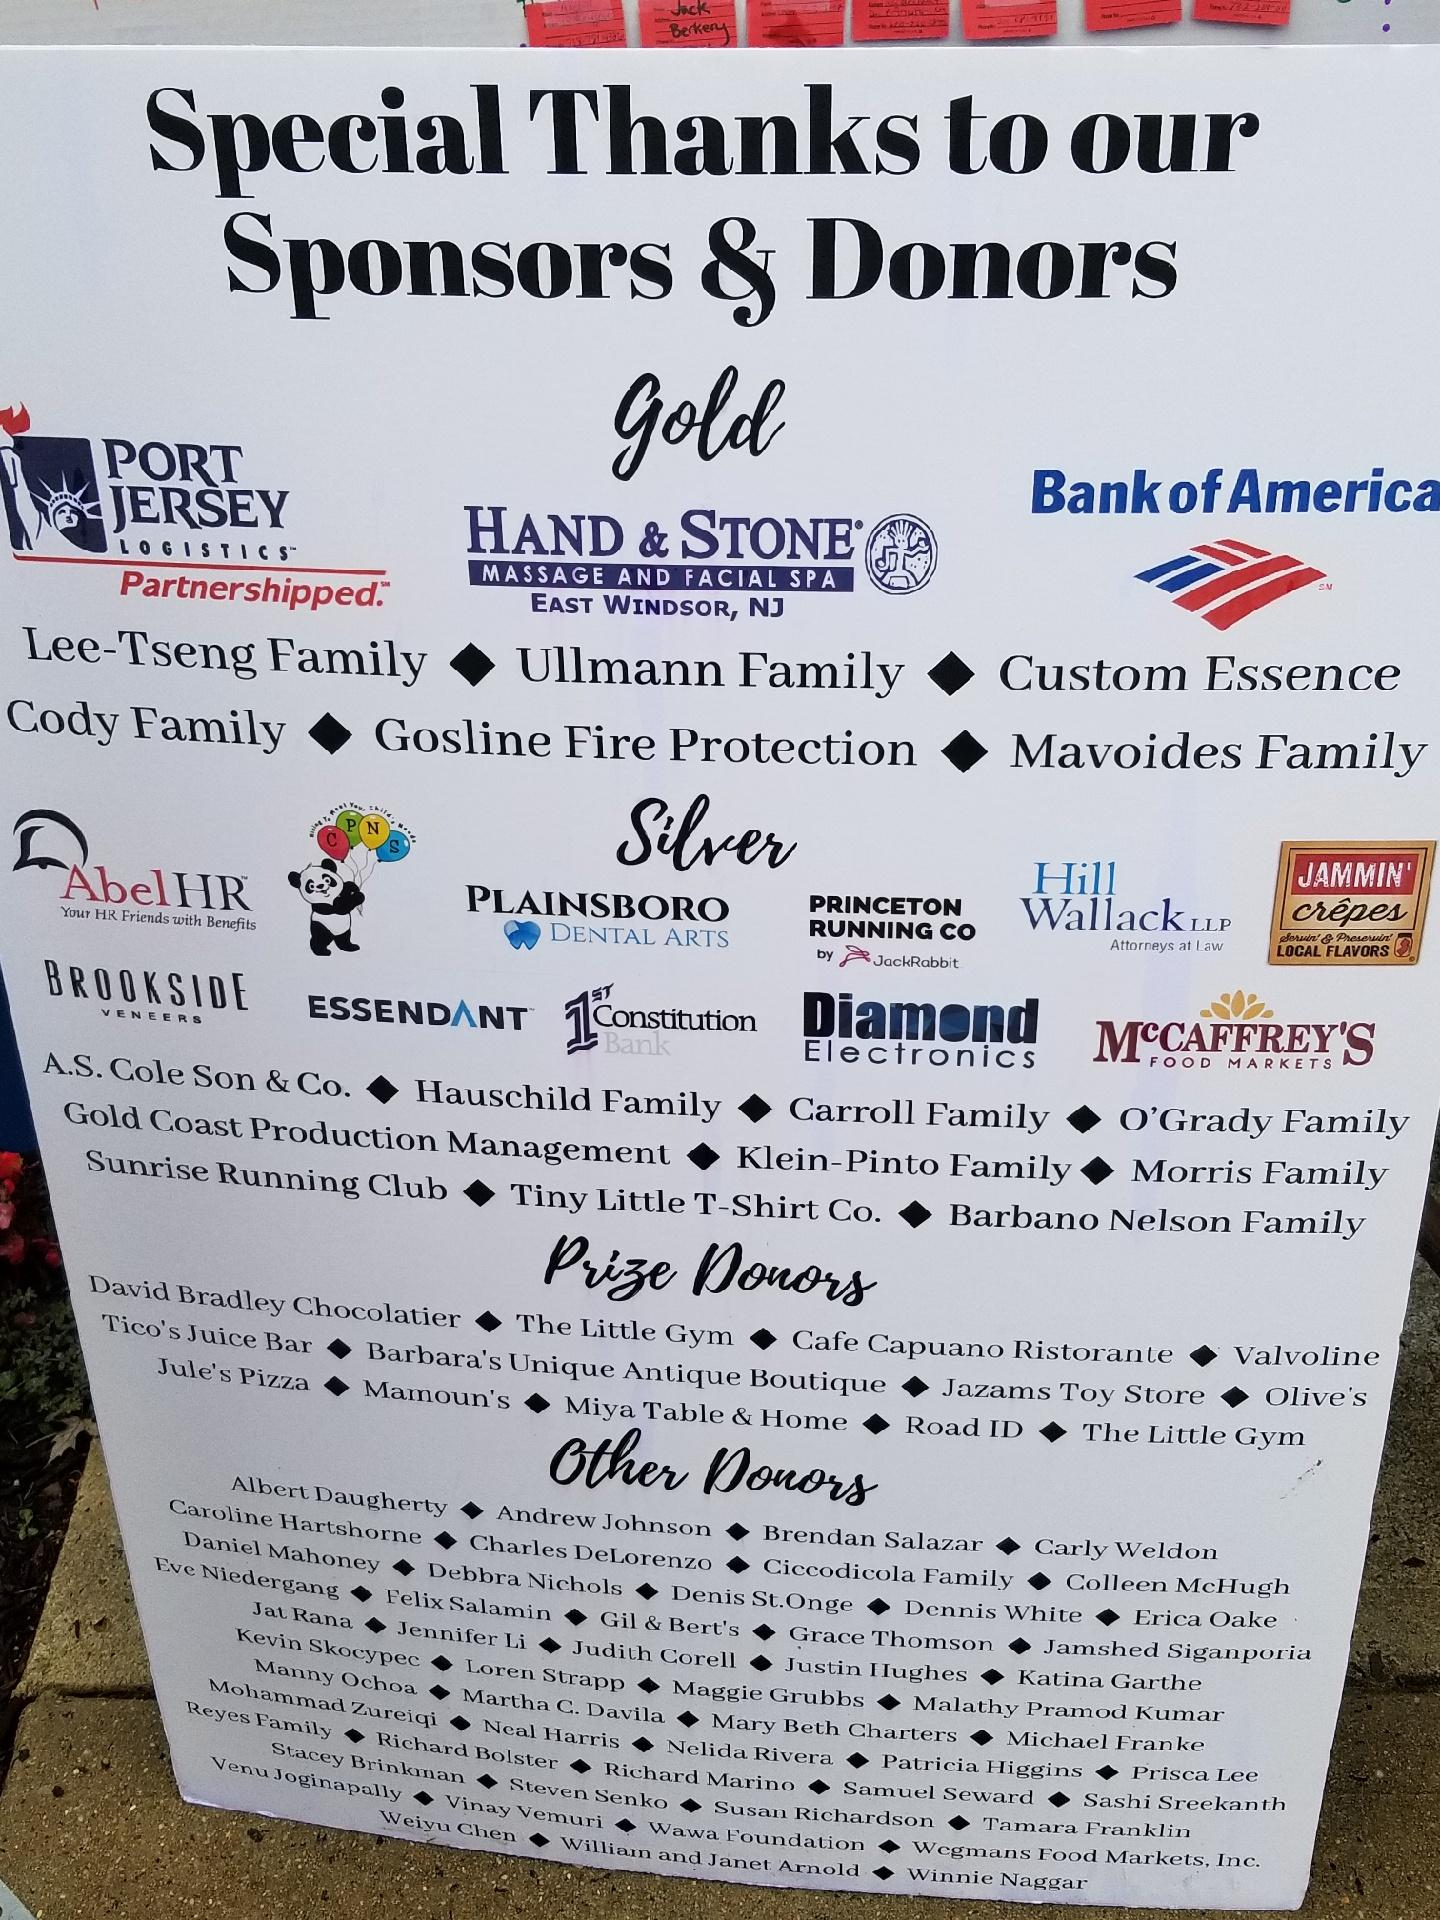 Proud Gold Sponsor for Helene Cody - Hand & Stone, East Windsor NJ 08520